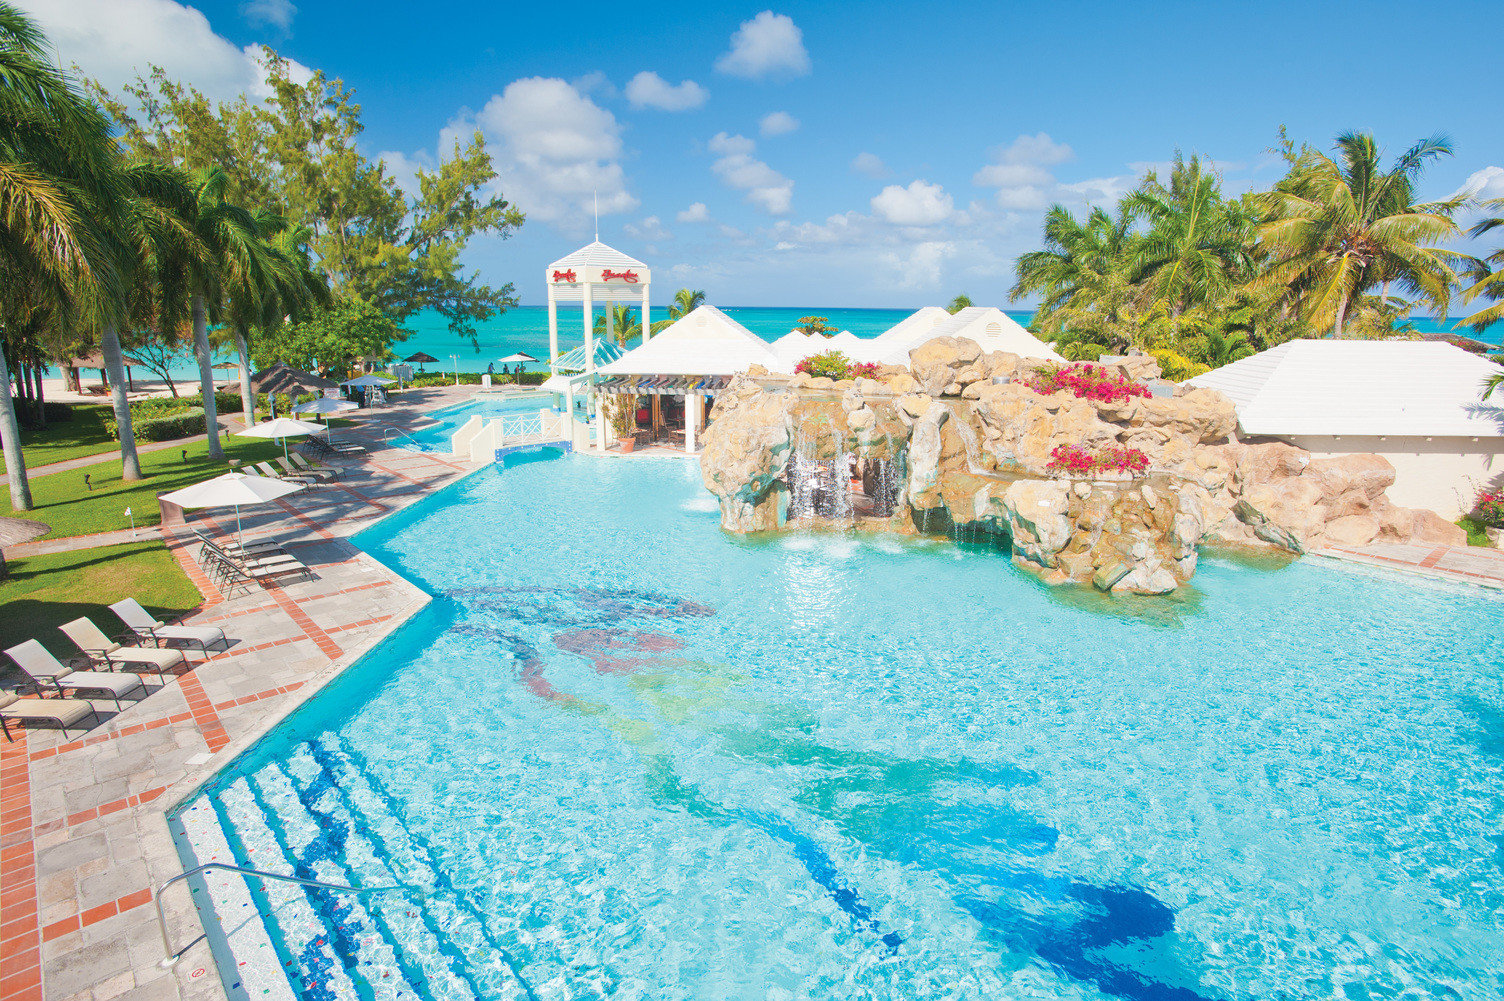 All-Inclusive Resorts Family Travel Hotels Resort leisure swimming pool caribbean vacation resort town tourism tropics water Lagoon palm tree coastal and oceanic landforms Water park bay Sea arecales sky recreation cay